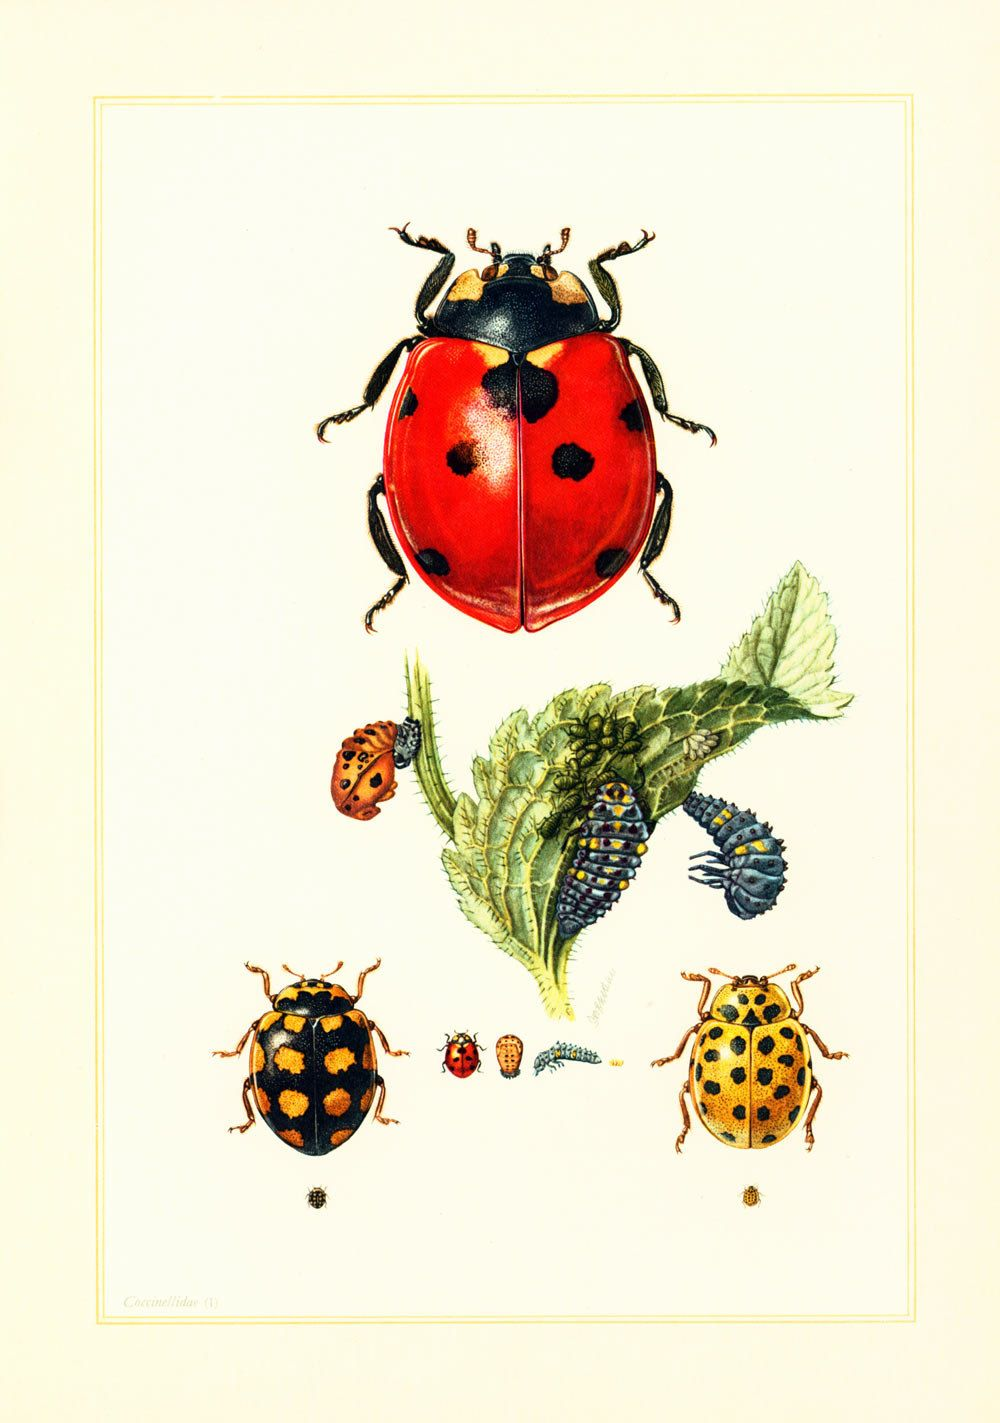 1960 vintage ladybug print illustration ladybird insect entomology natural history science. Black Bedroom Furniture Sets. Home Design Ideas